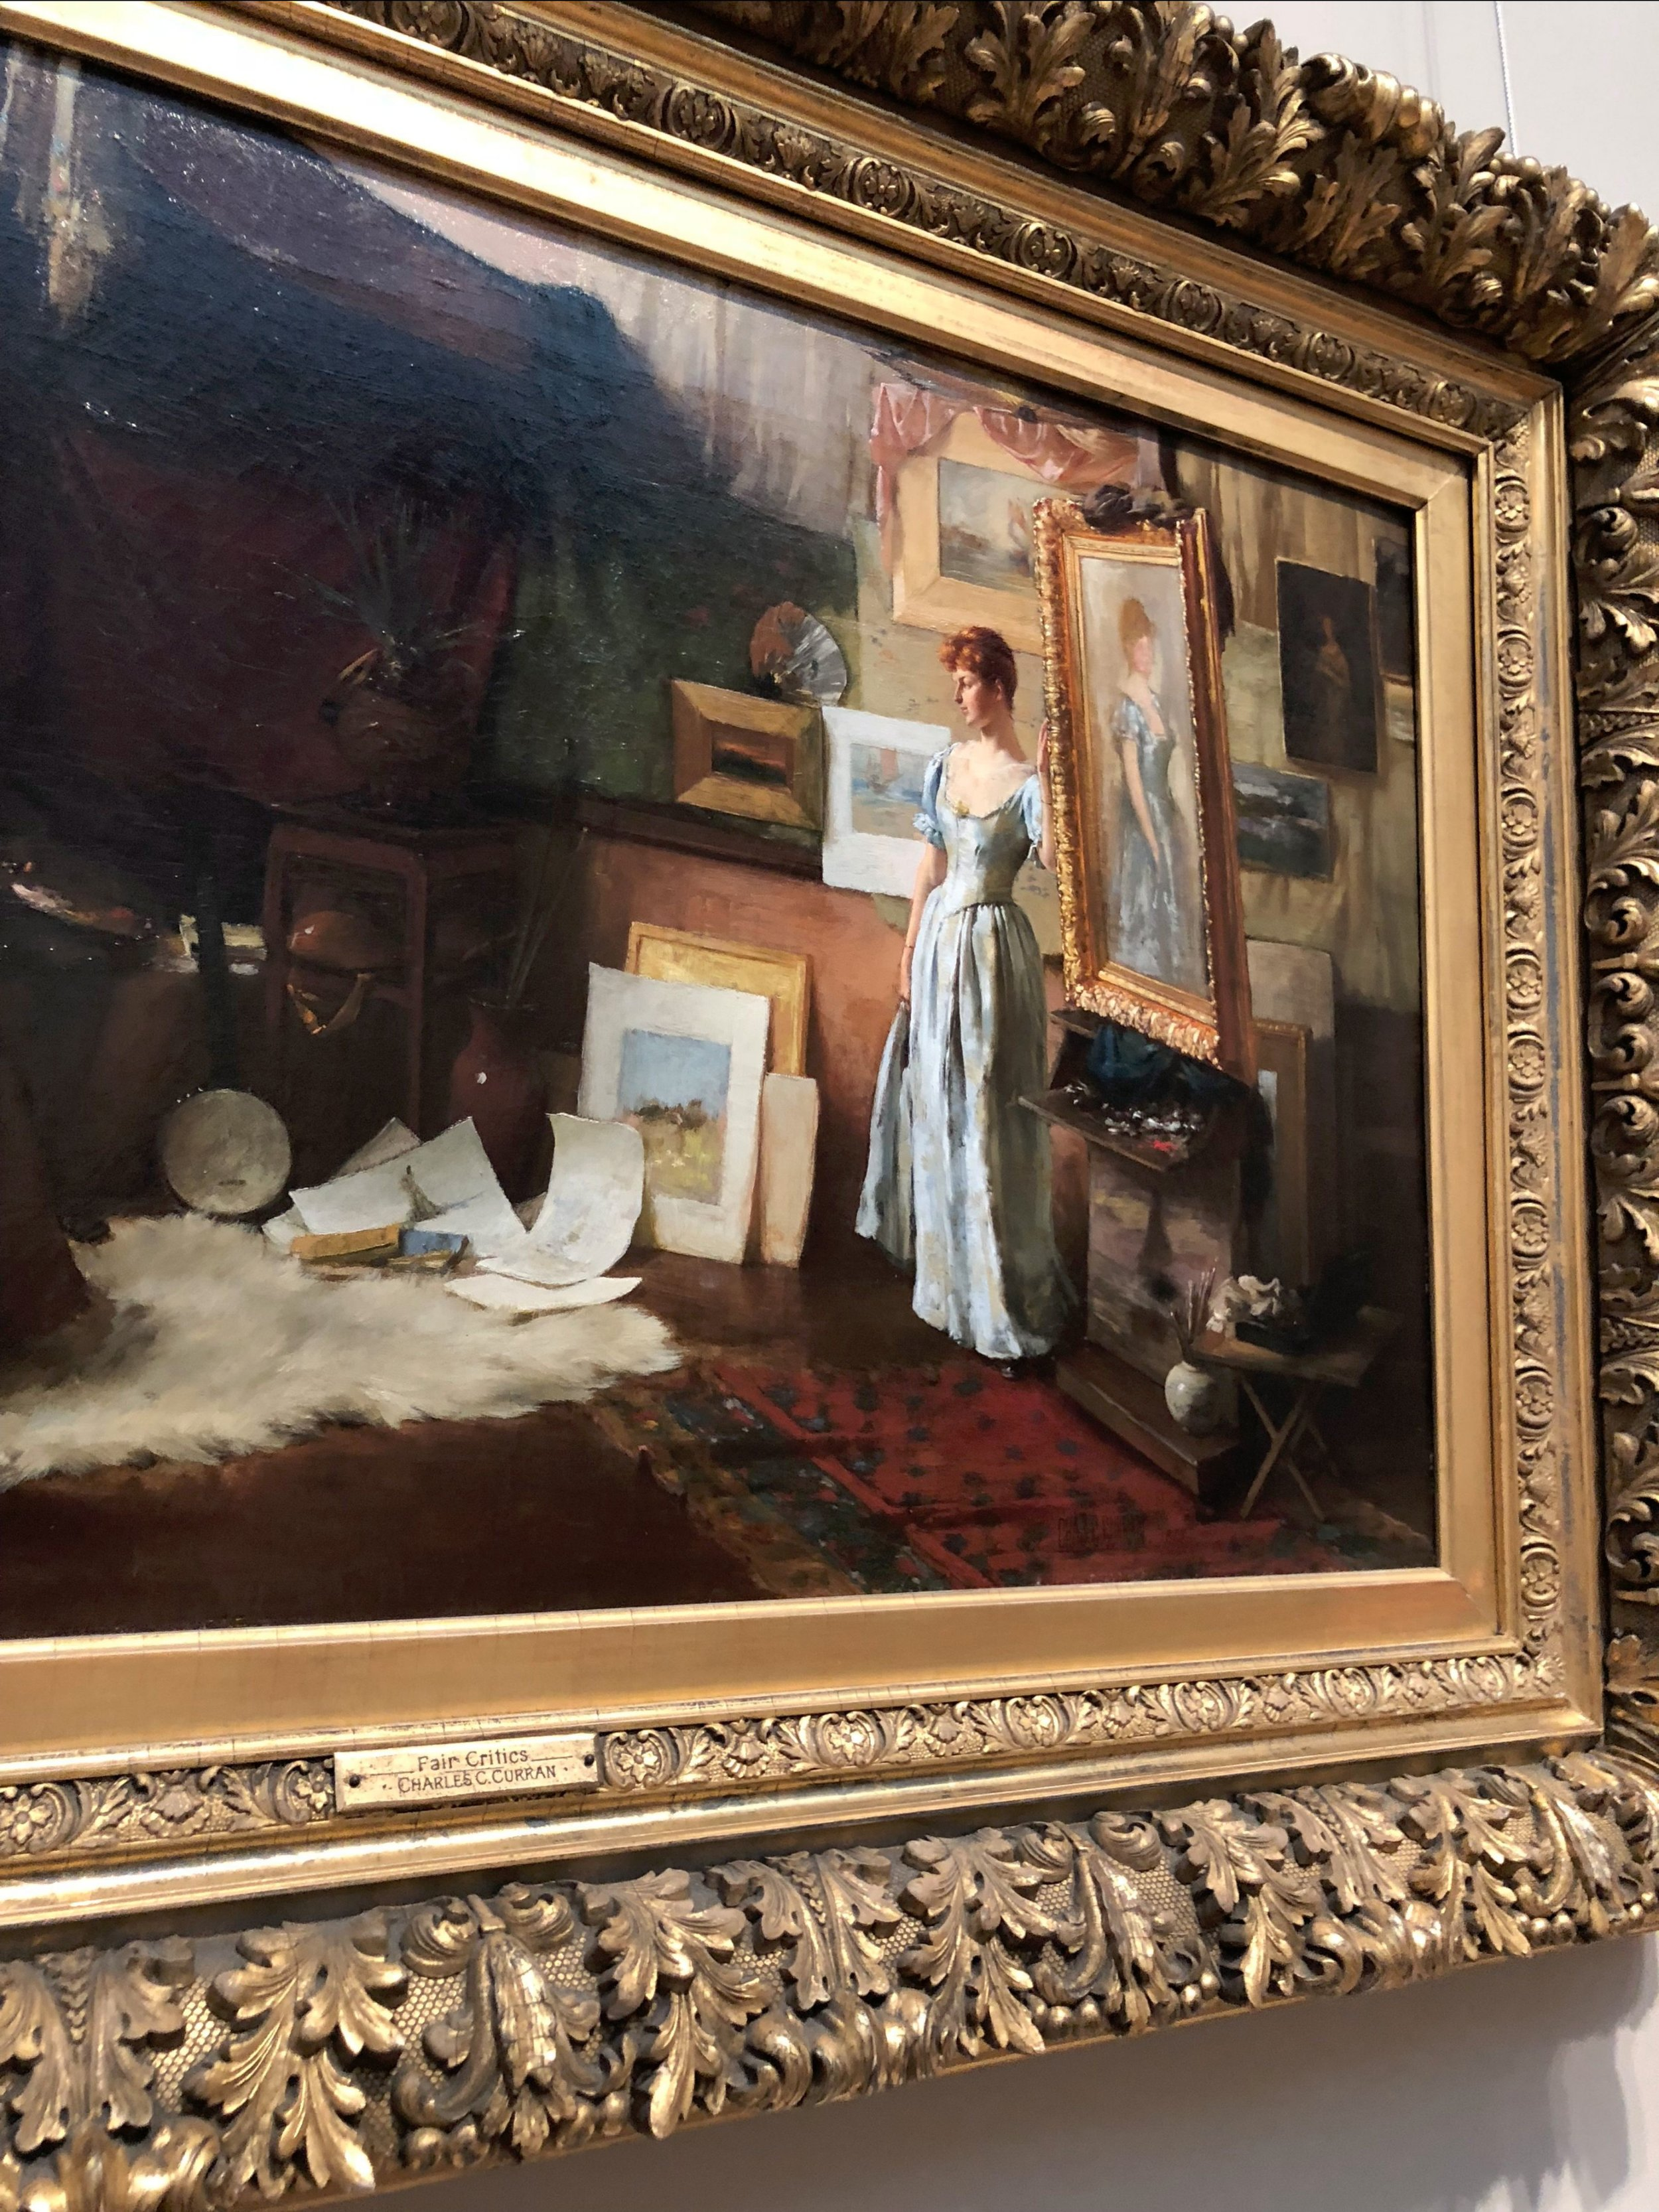 Fair Critics  (Detail), 1887 by Charles Courtney Curran in gilded frame at the Metropolitan Museum of Art, Photograph by Amie Potsic